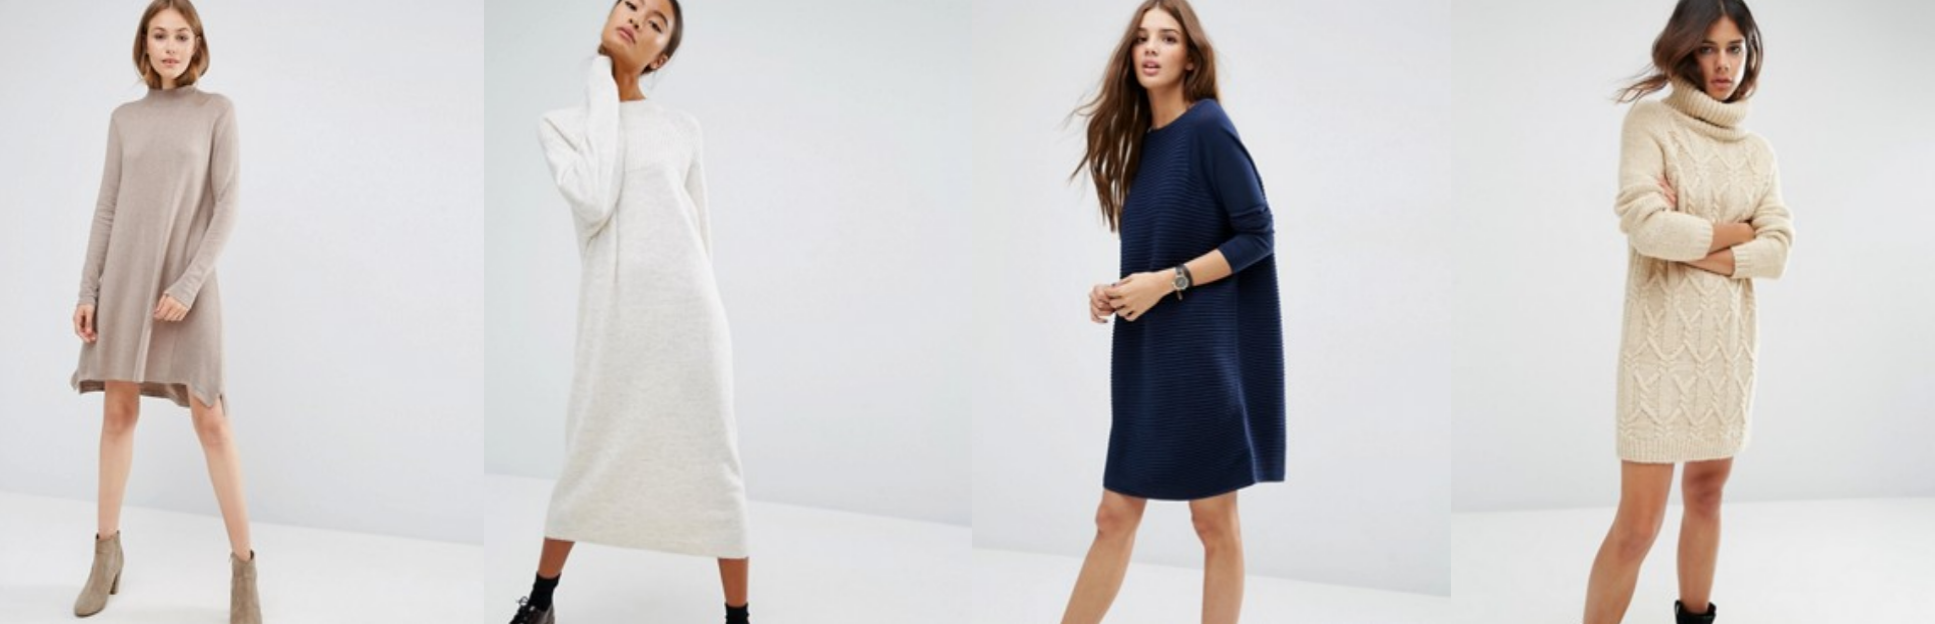 knit-dresses-for-fall